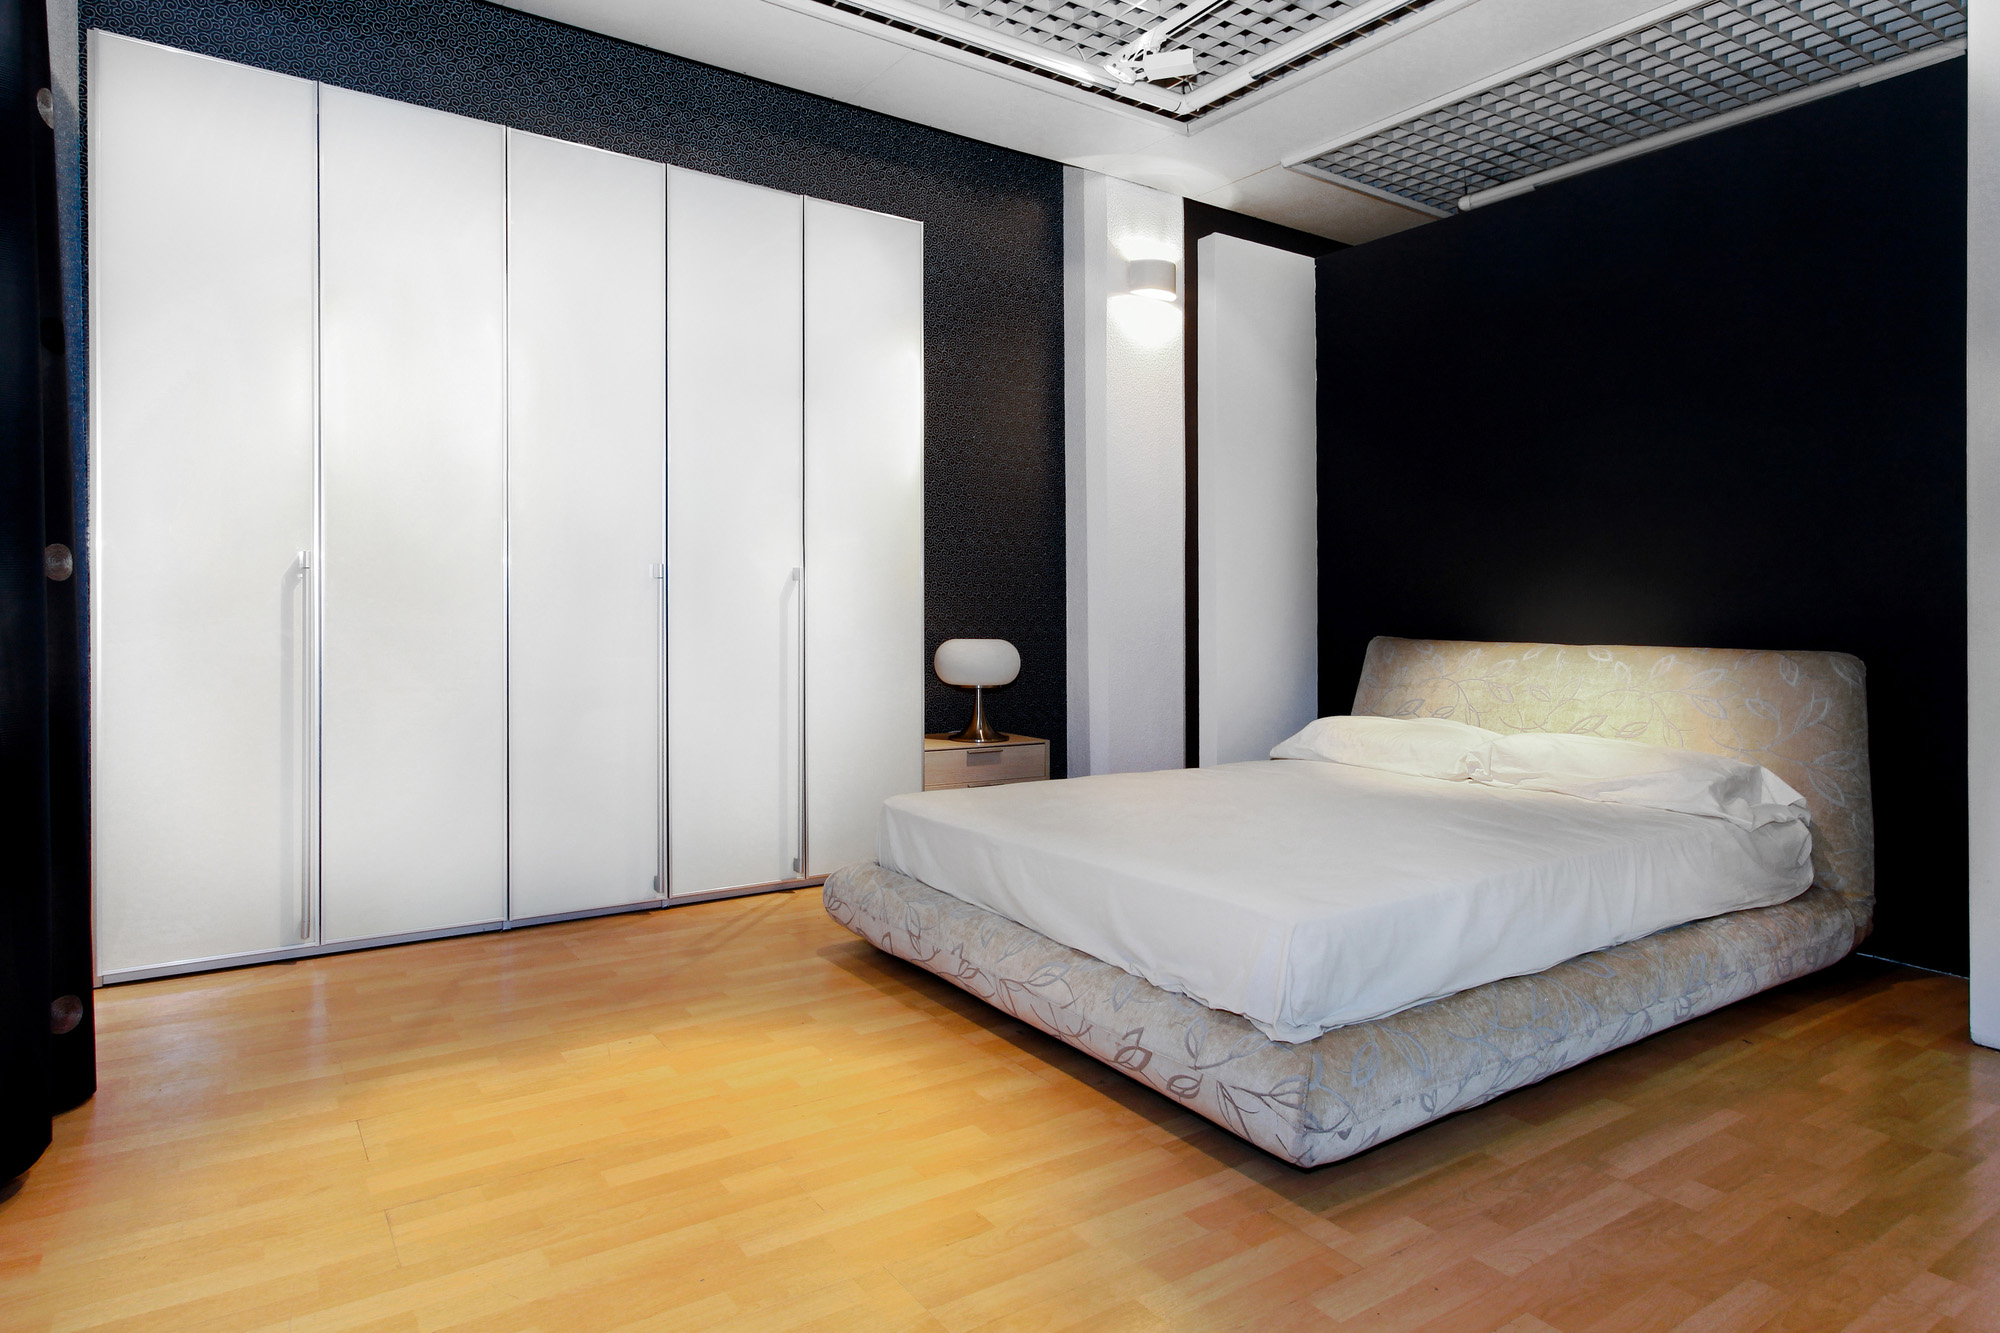 fitted white wardrobes, wardrobe doors, wardrobe design